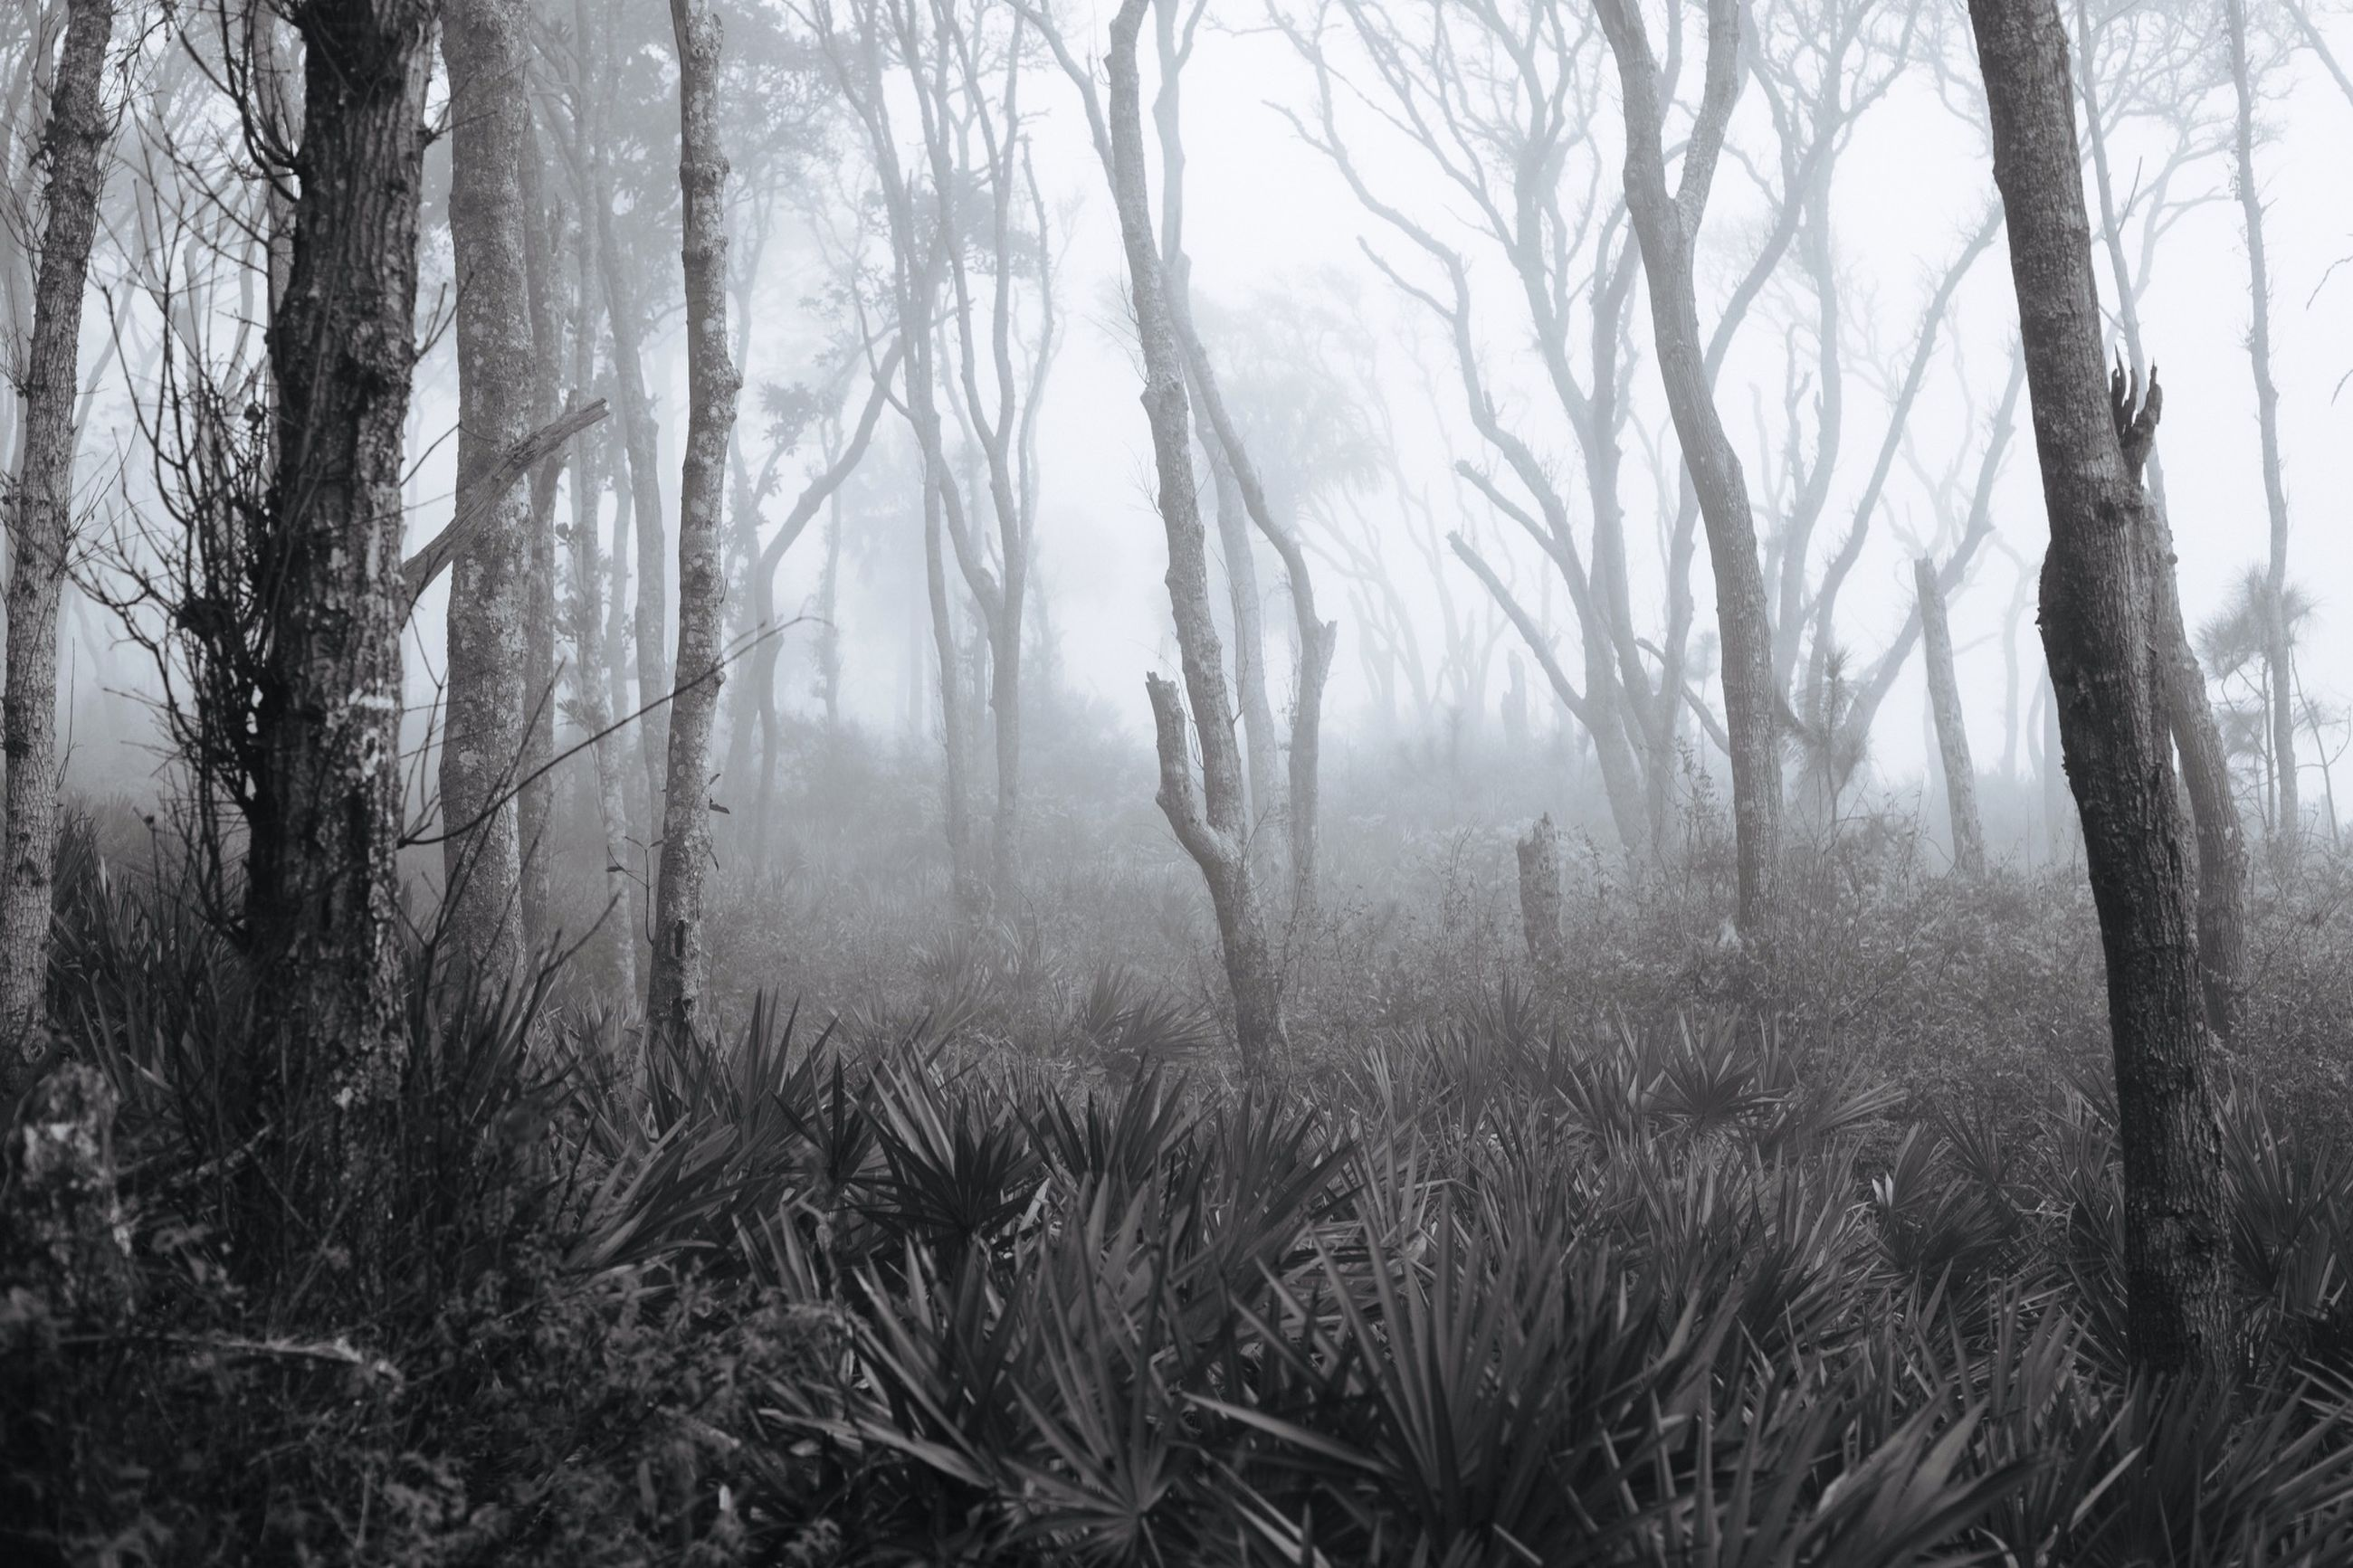 tree, fog, tranquility, forest, tree trunk, tranquil scene, foggy, woodland, nature, scenics, bare tree, beauty in nature, growth, branch, non-urban scene, weather, landscape, day, idyllic, outdoors